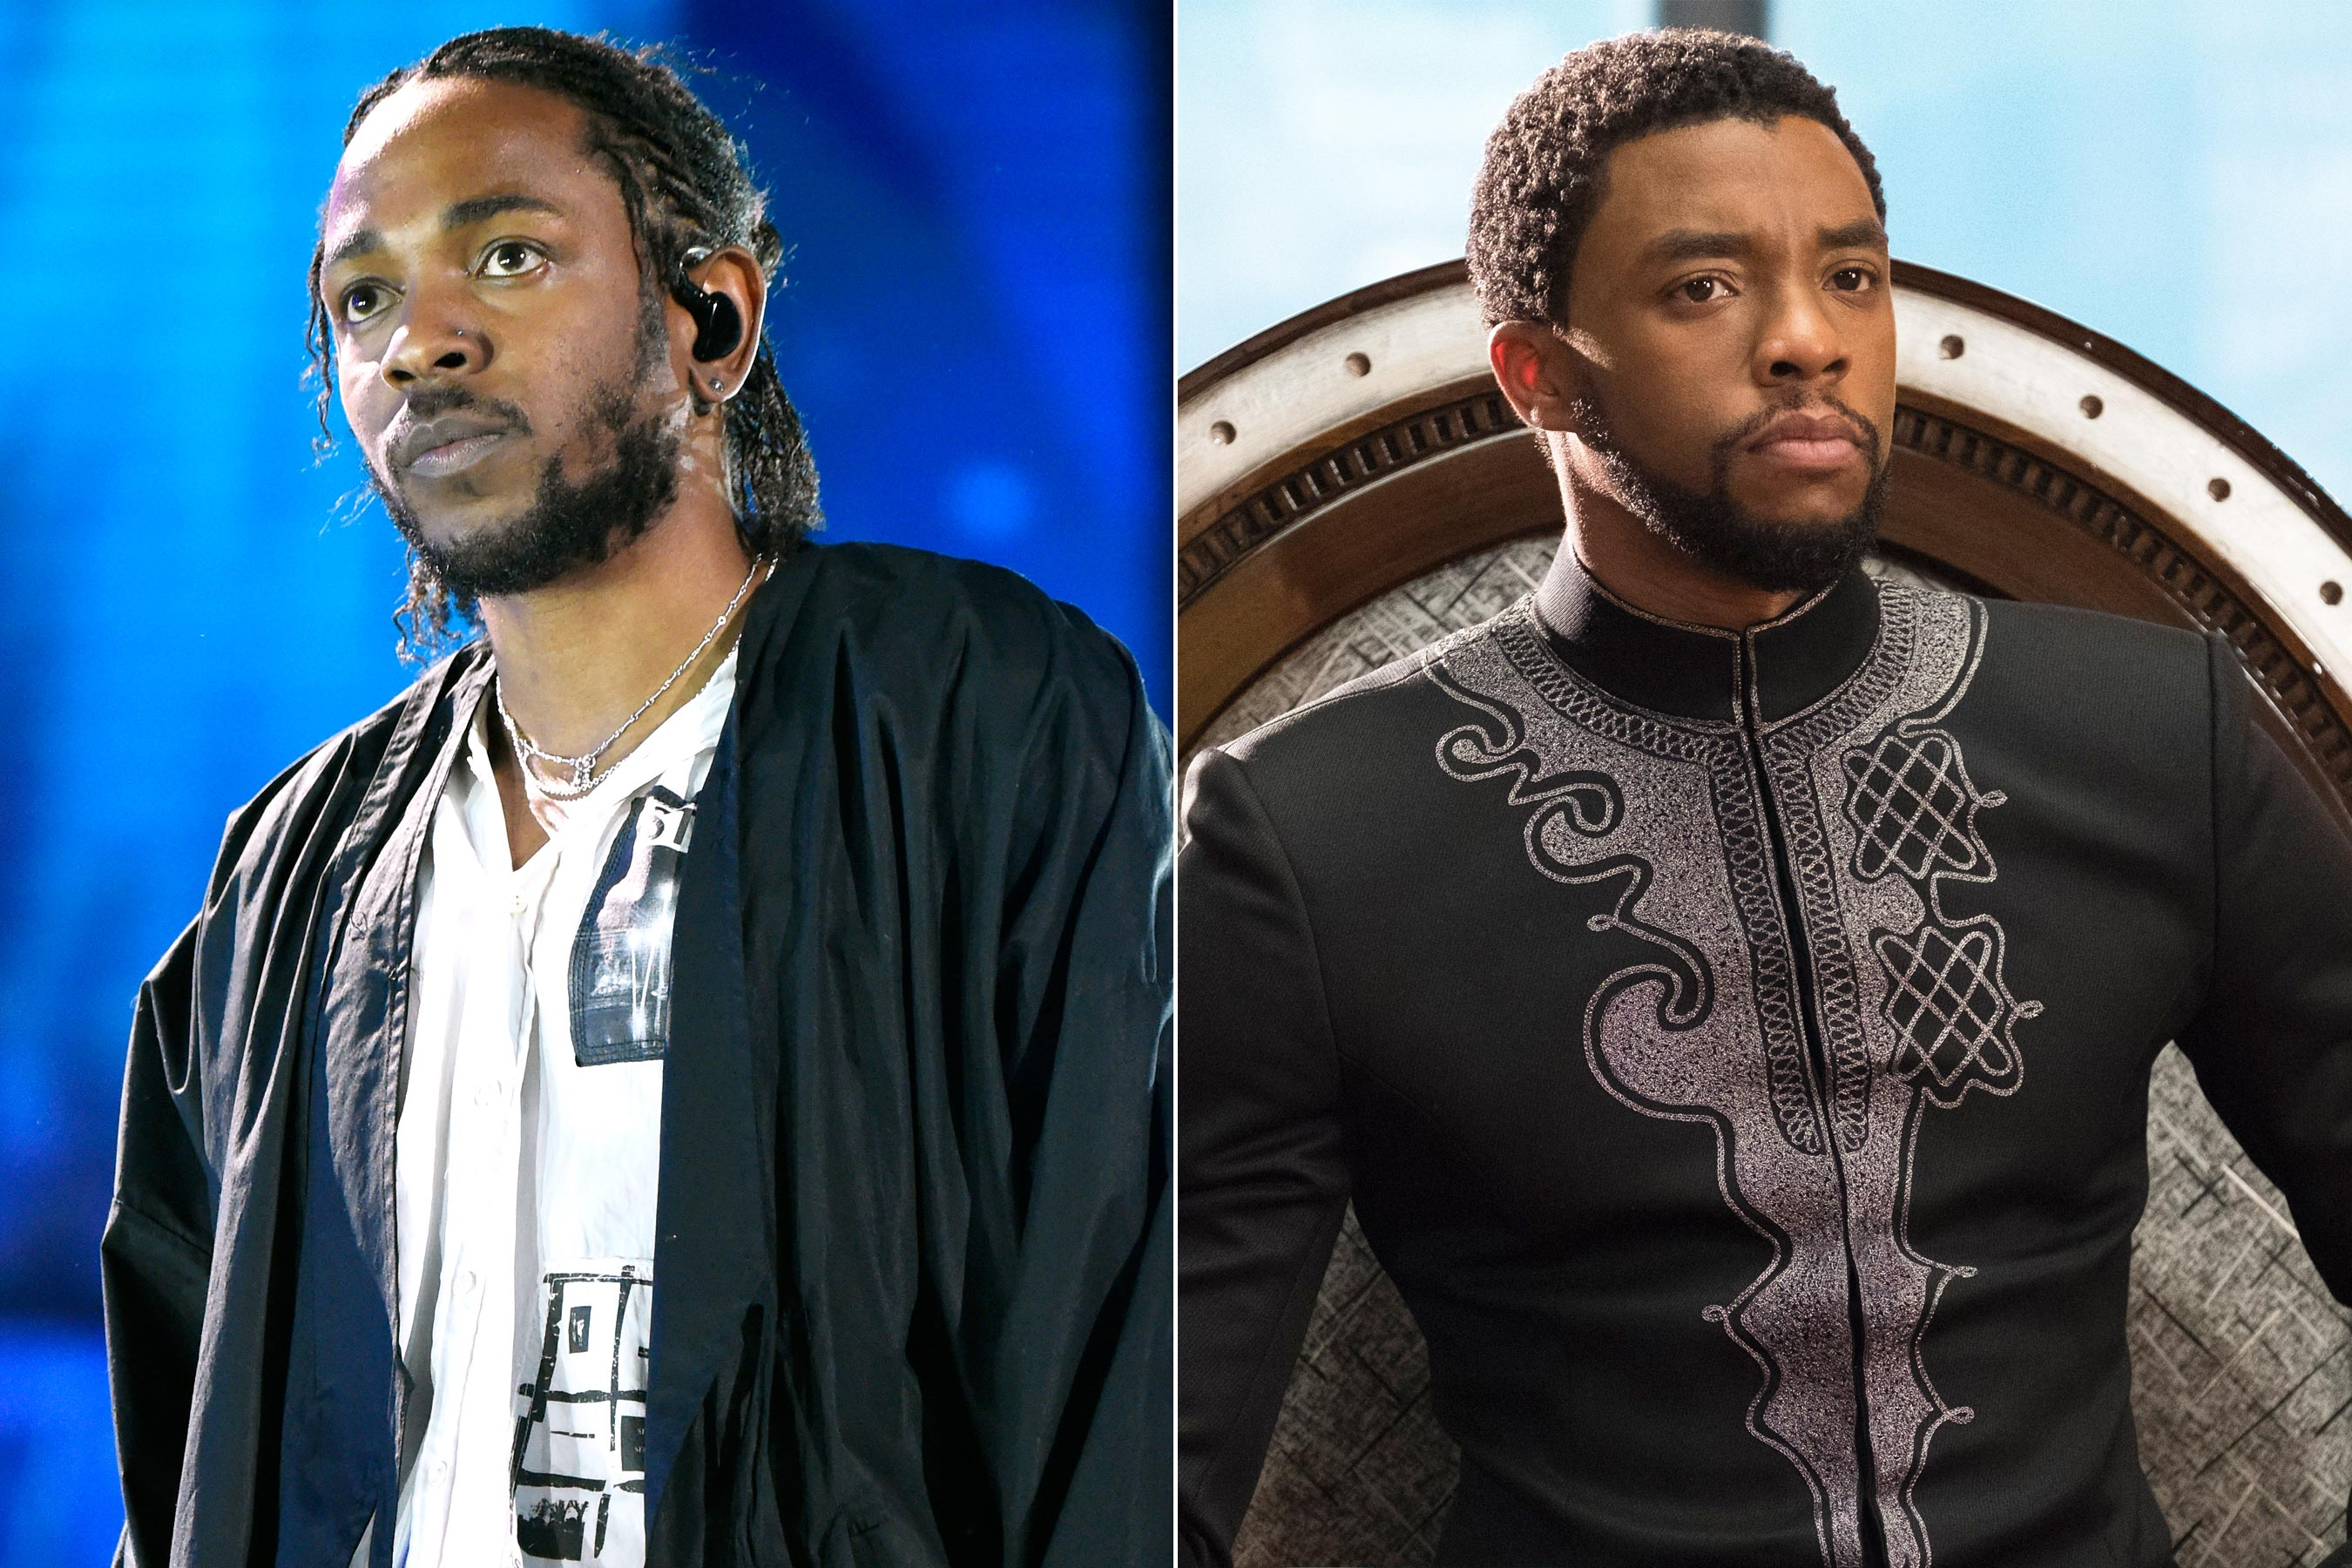 Black Panther soundtrack: Billboard No. 1 debut on album chart in the cards